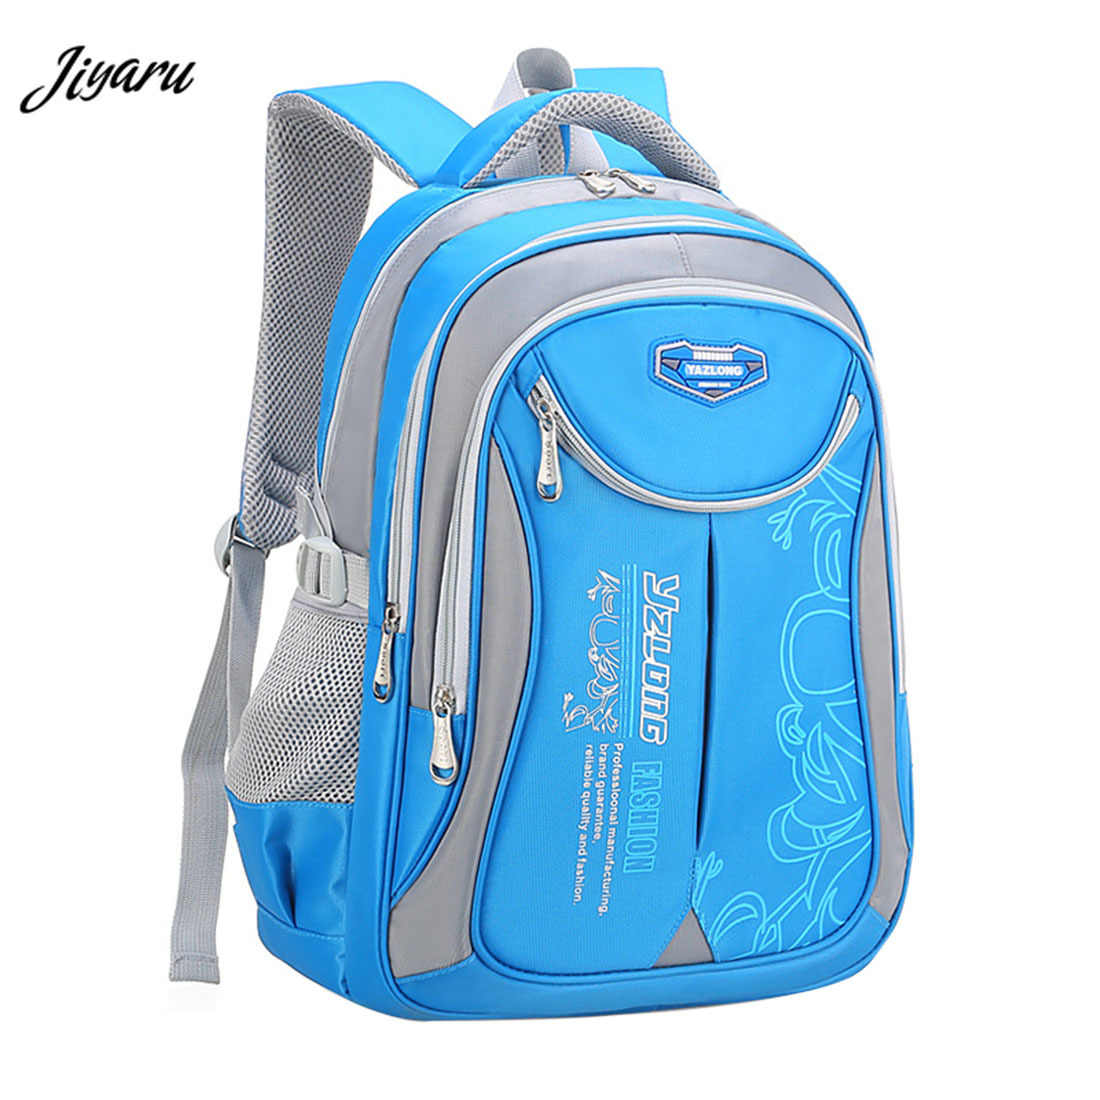 2a1d26ed683 Detail Feedback Questions about Hot Sale Backpack Schoolbags ...